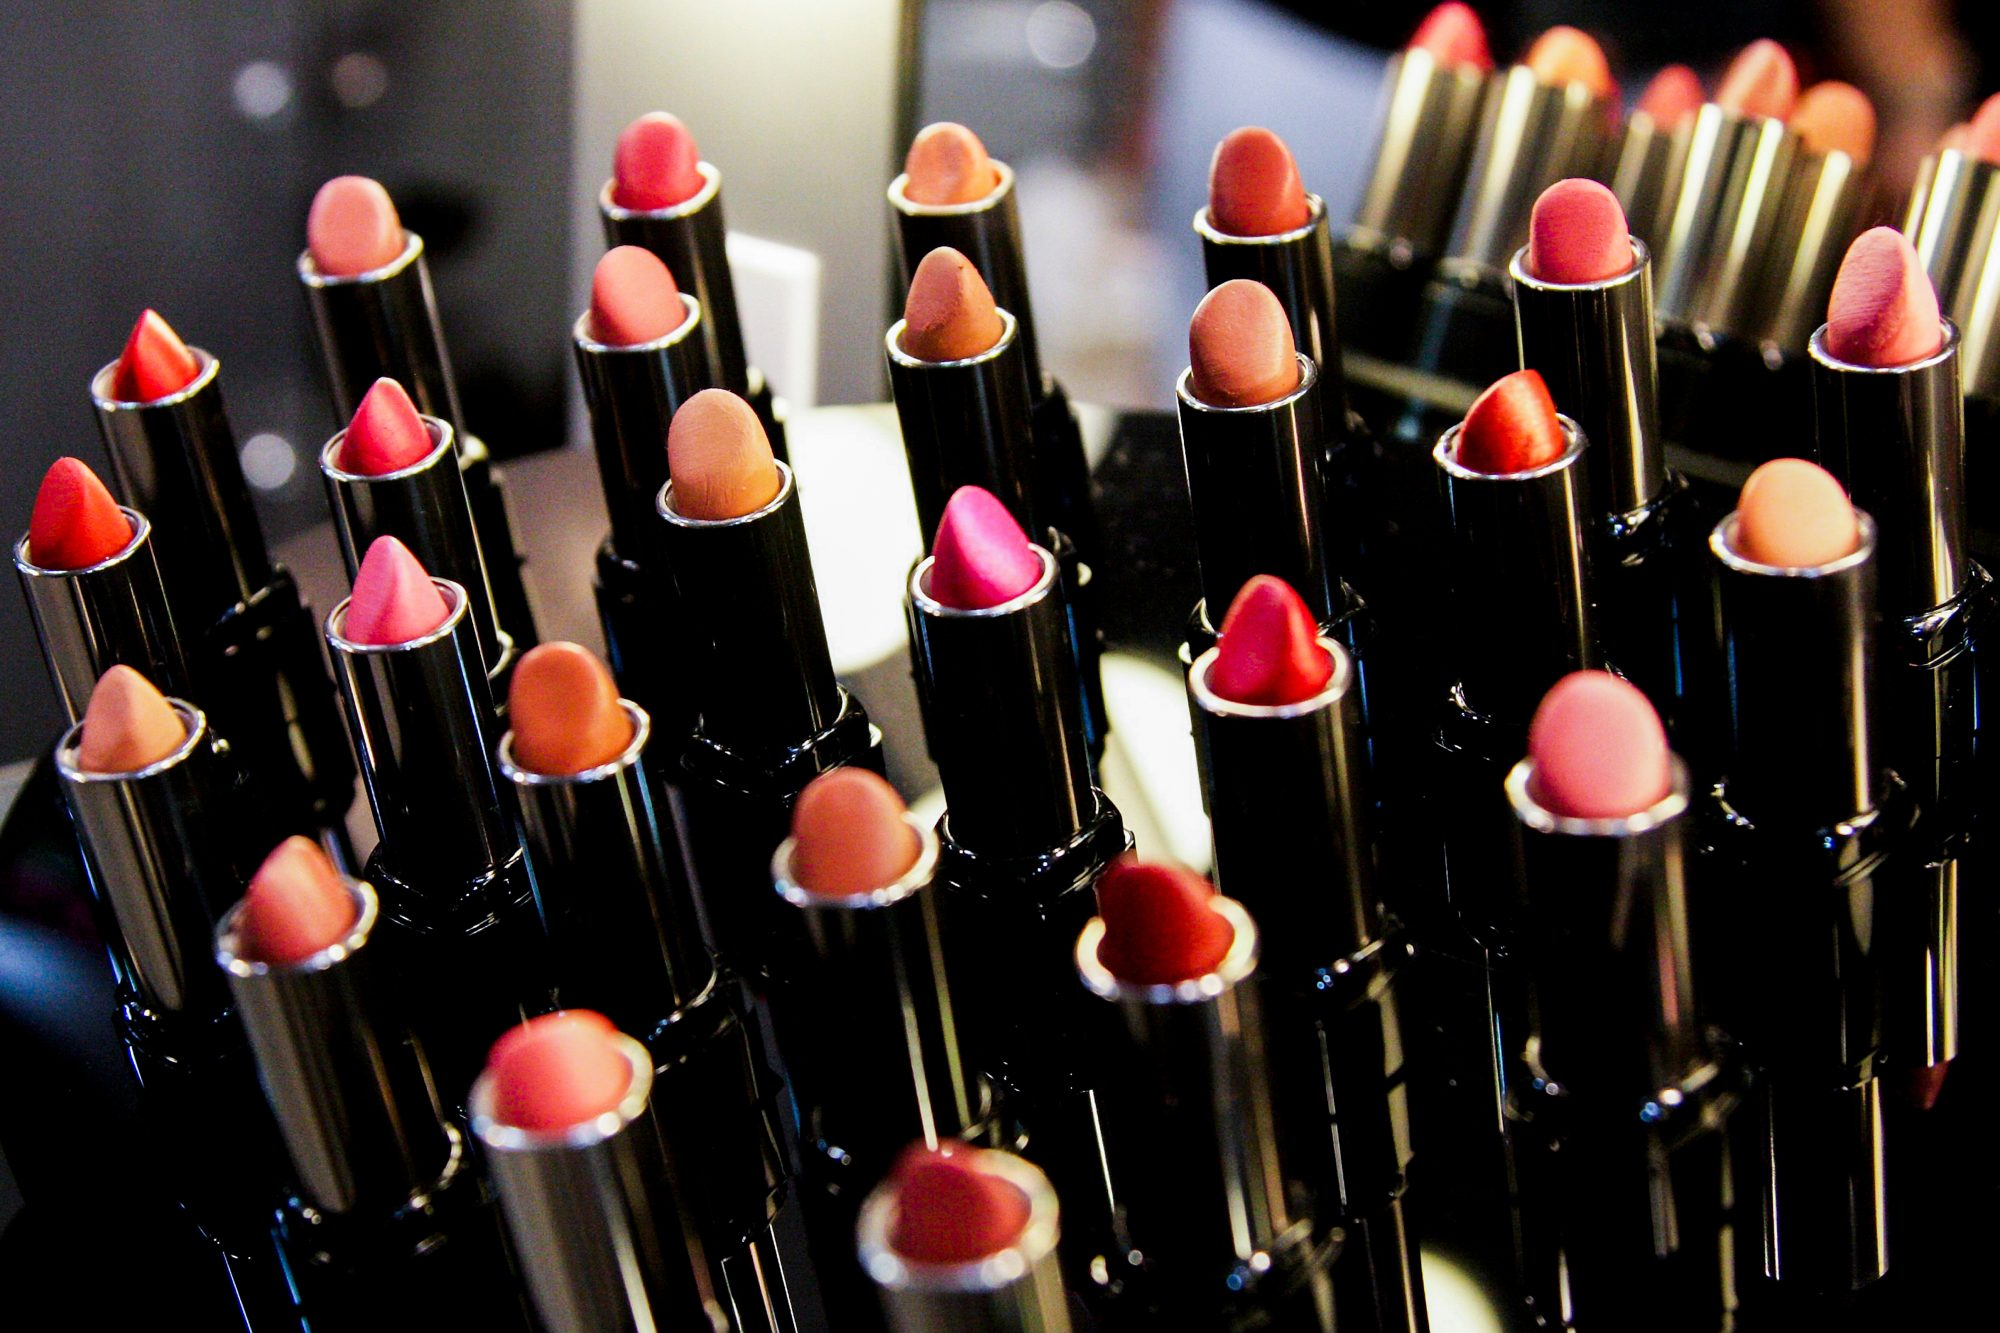 Can You Get Herpes From Lipstick? This Woman SuedSephora Claiming She Did